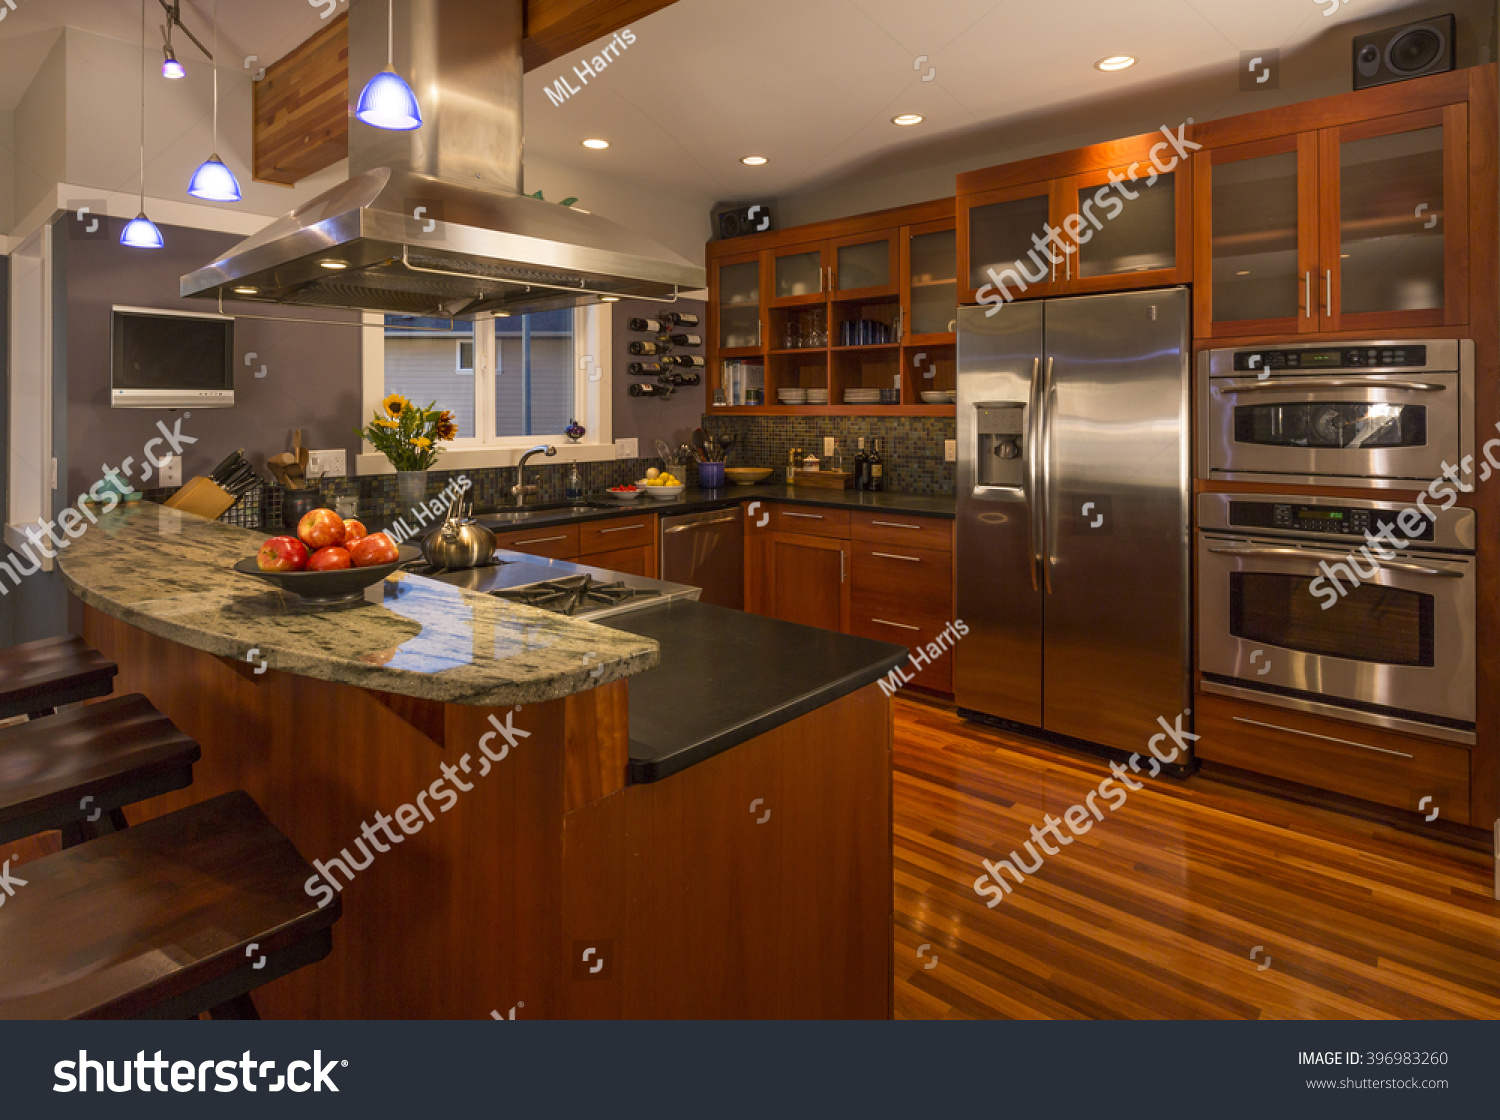 Upscale Kitchen Appliances Royalty Free Contemporary Upscale Home Kitchen 396983260 Stock